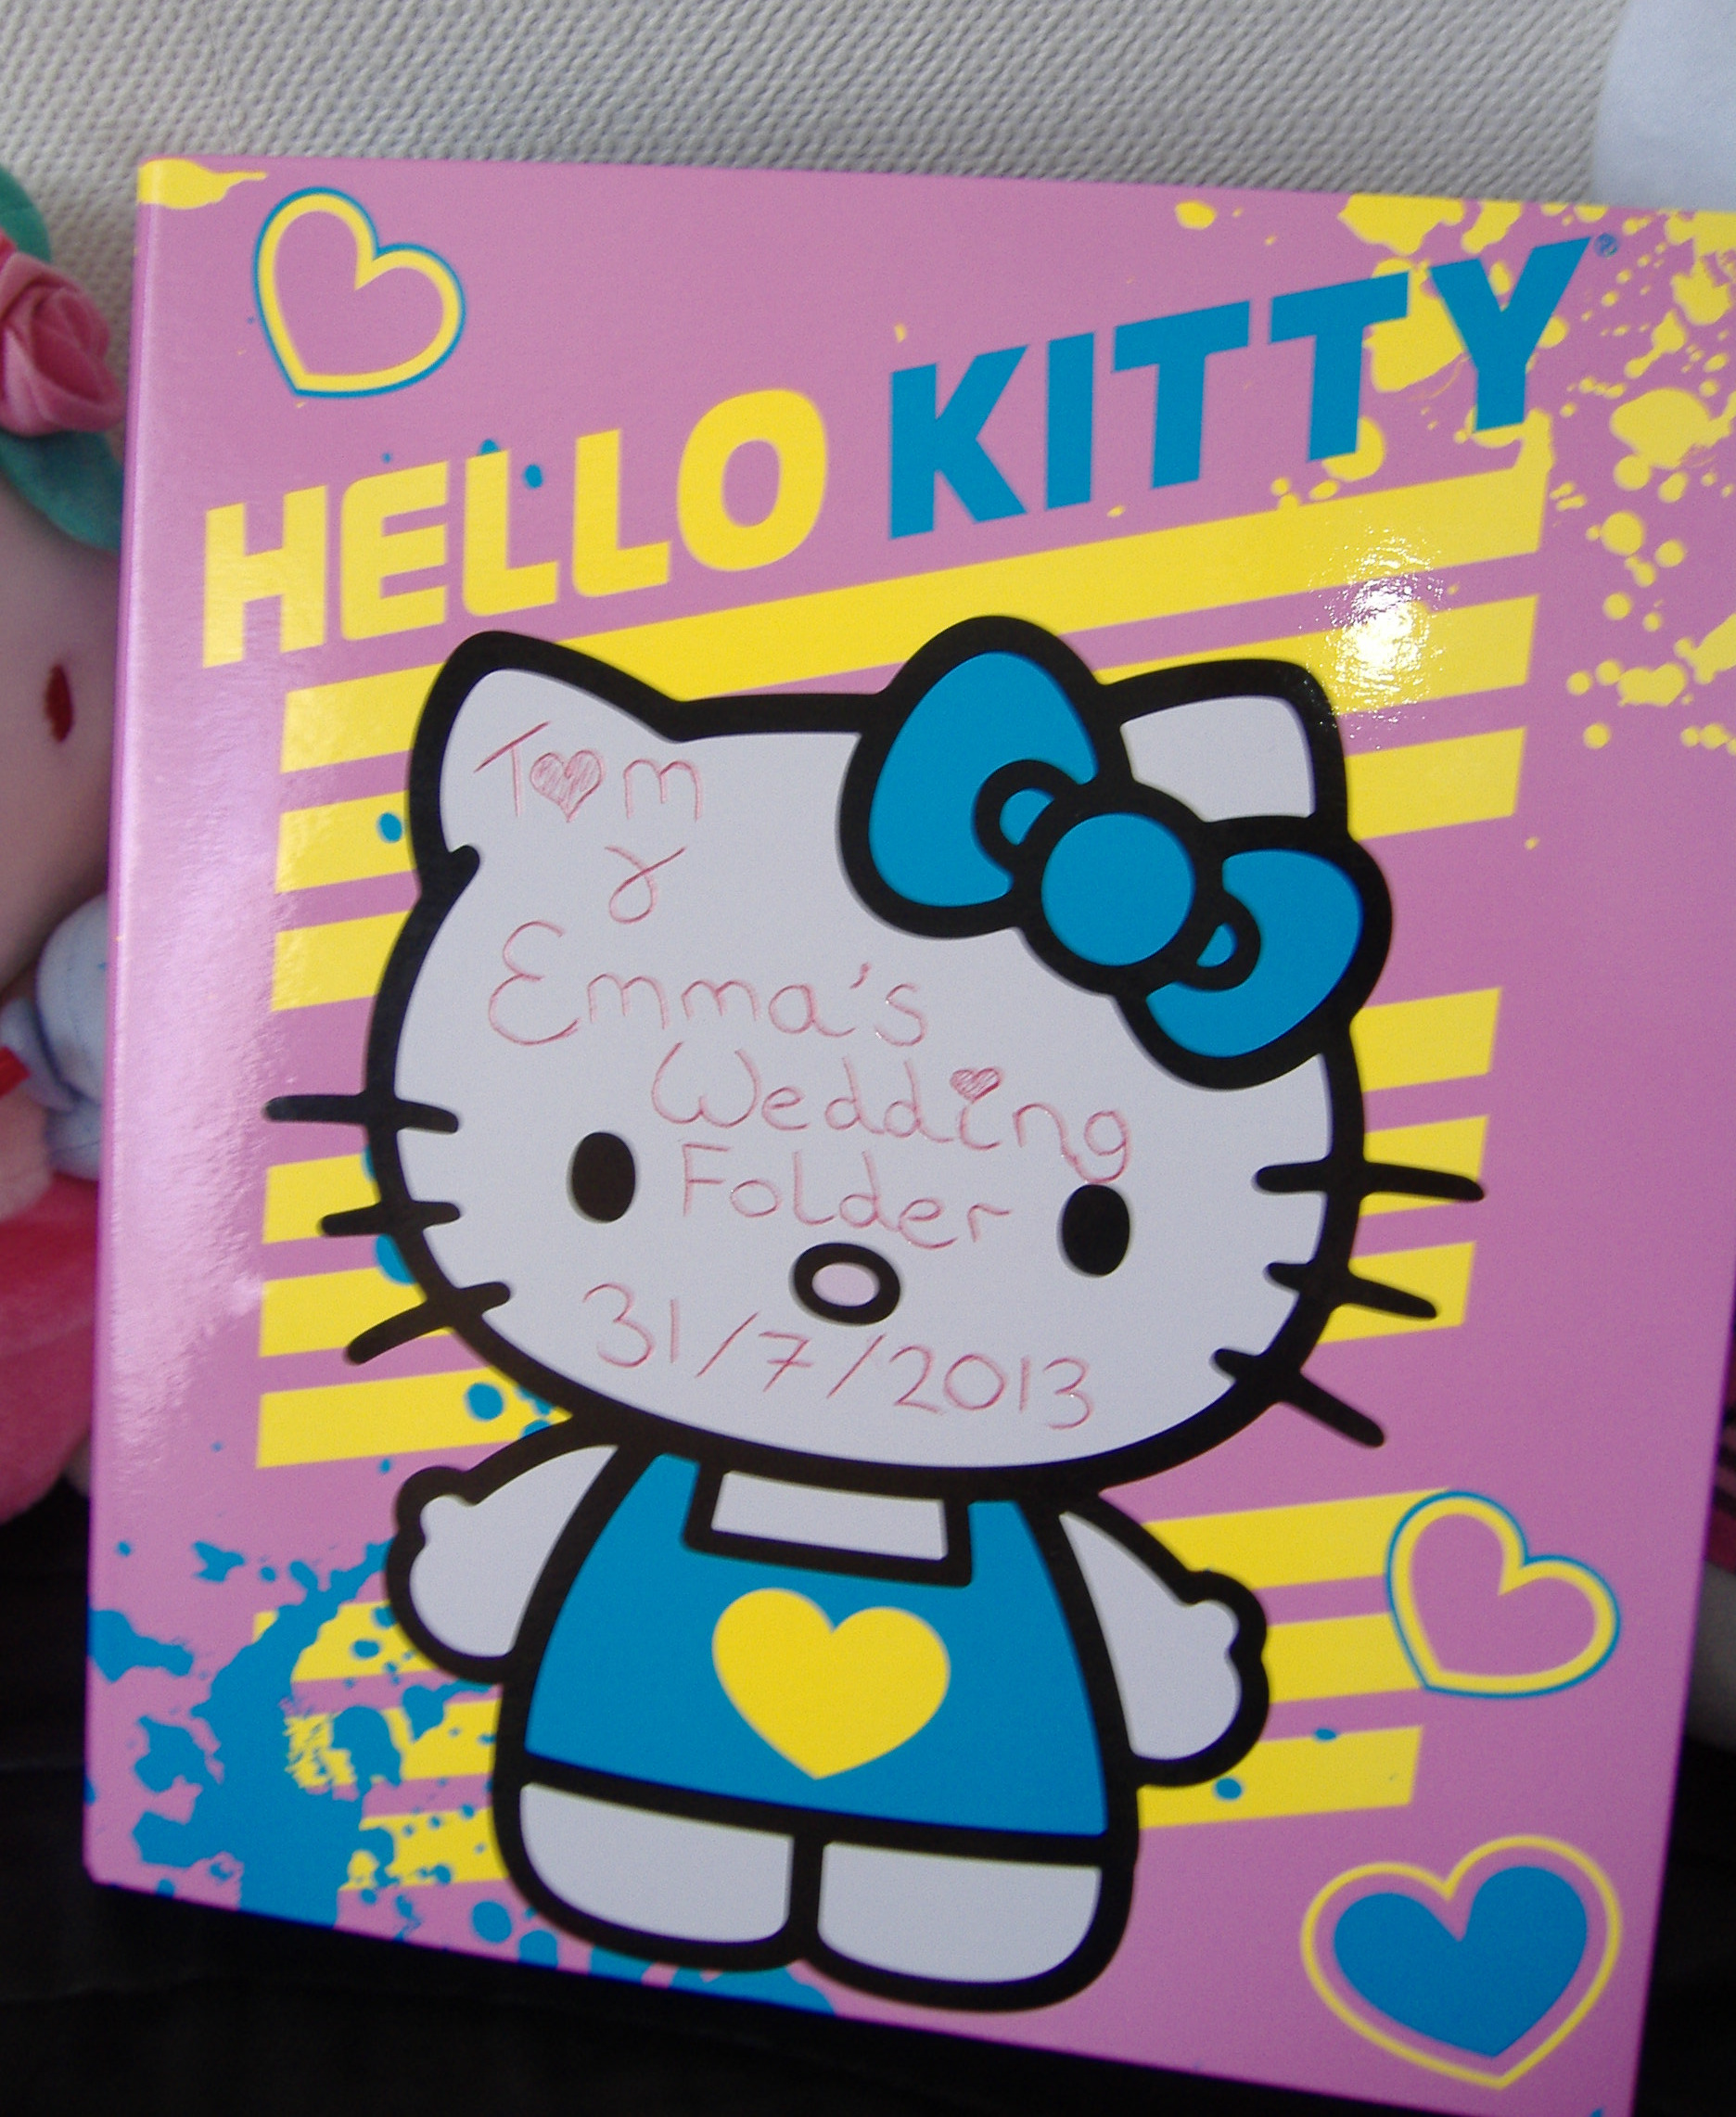 Hello Kitty Folders Target Hello Kitty Wedding Folder